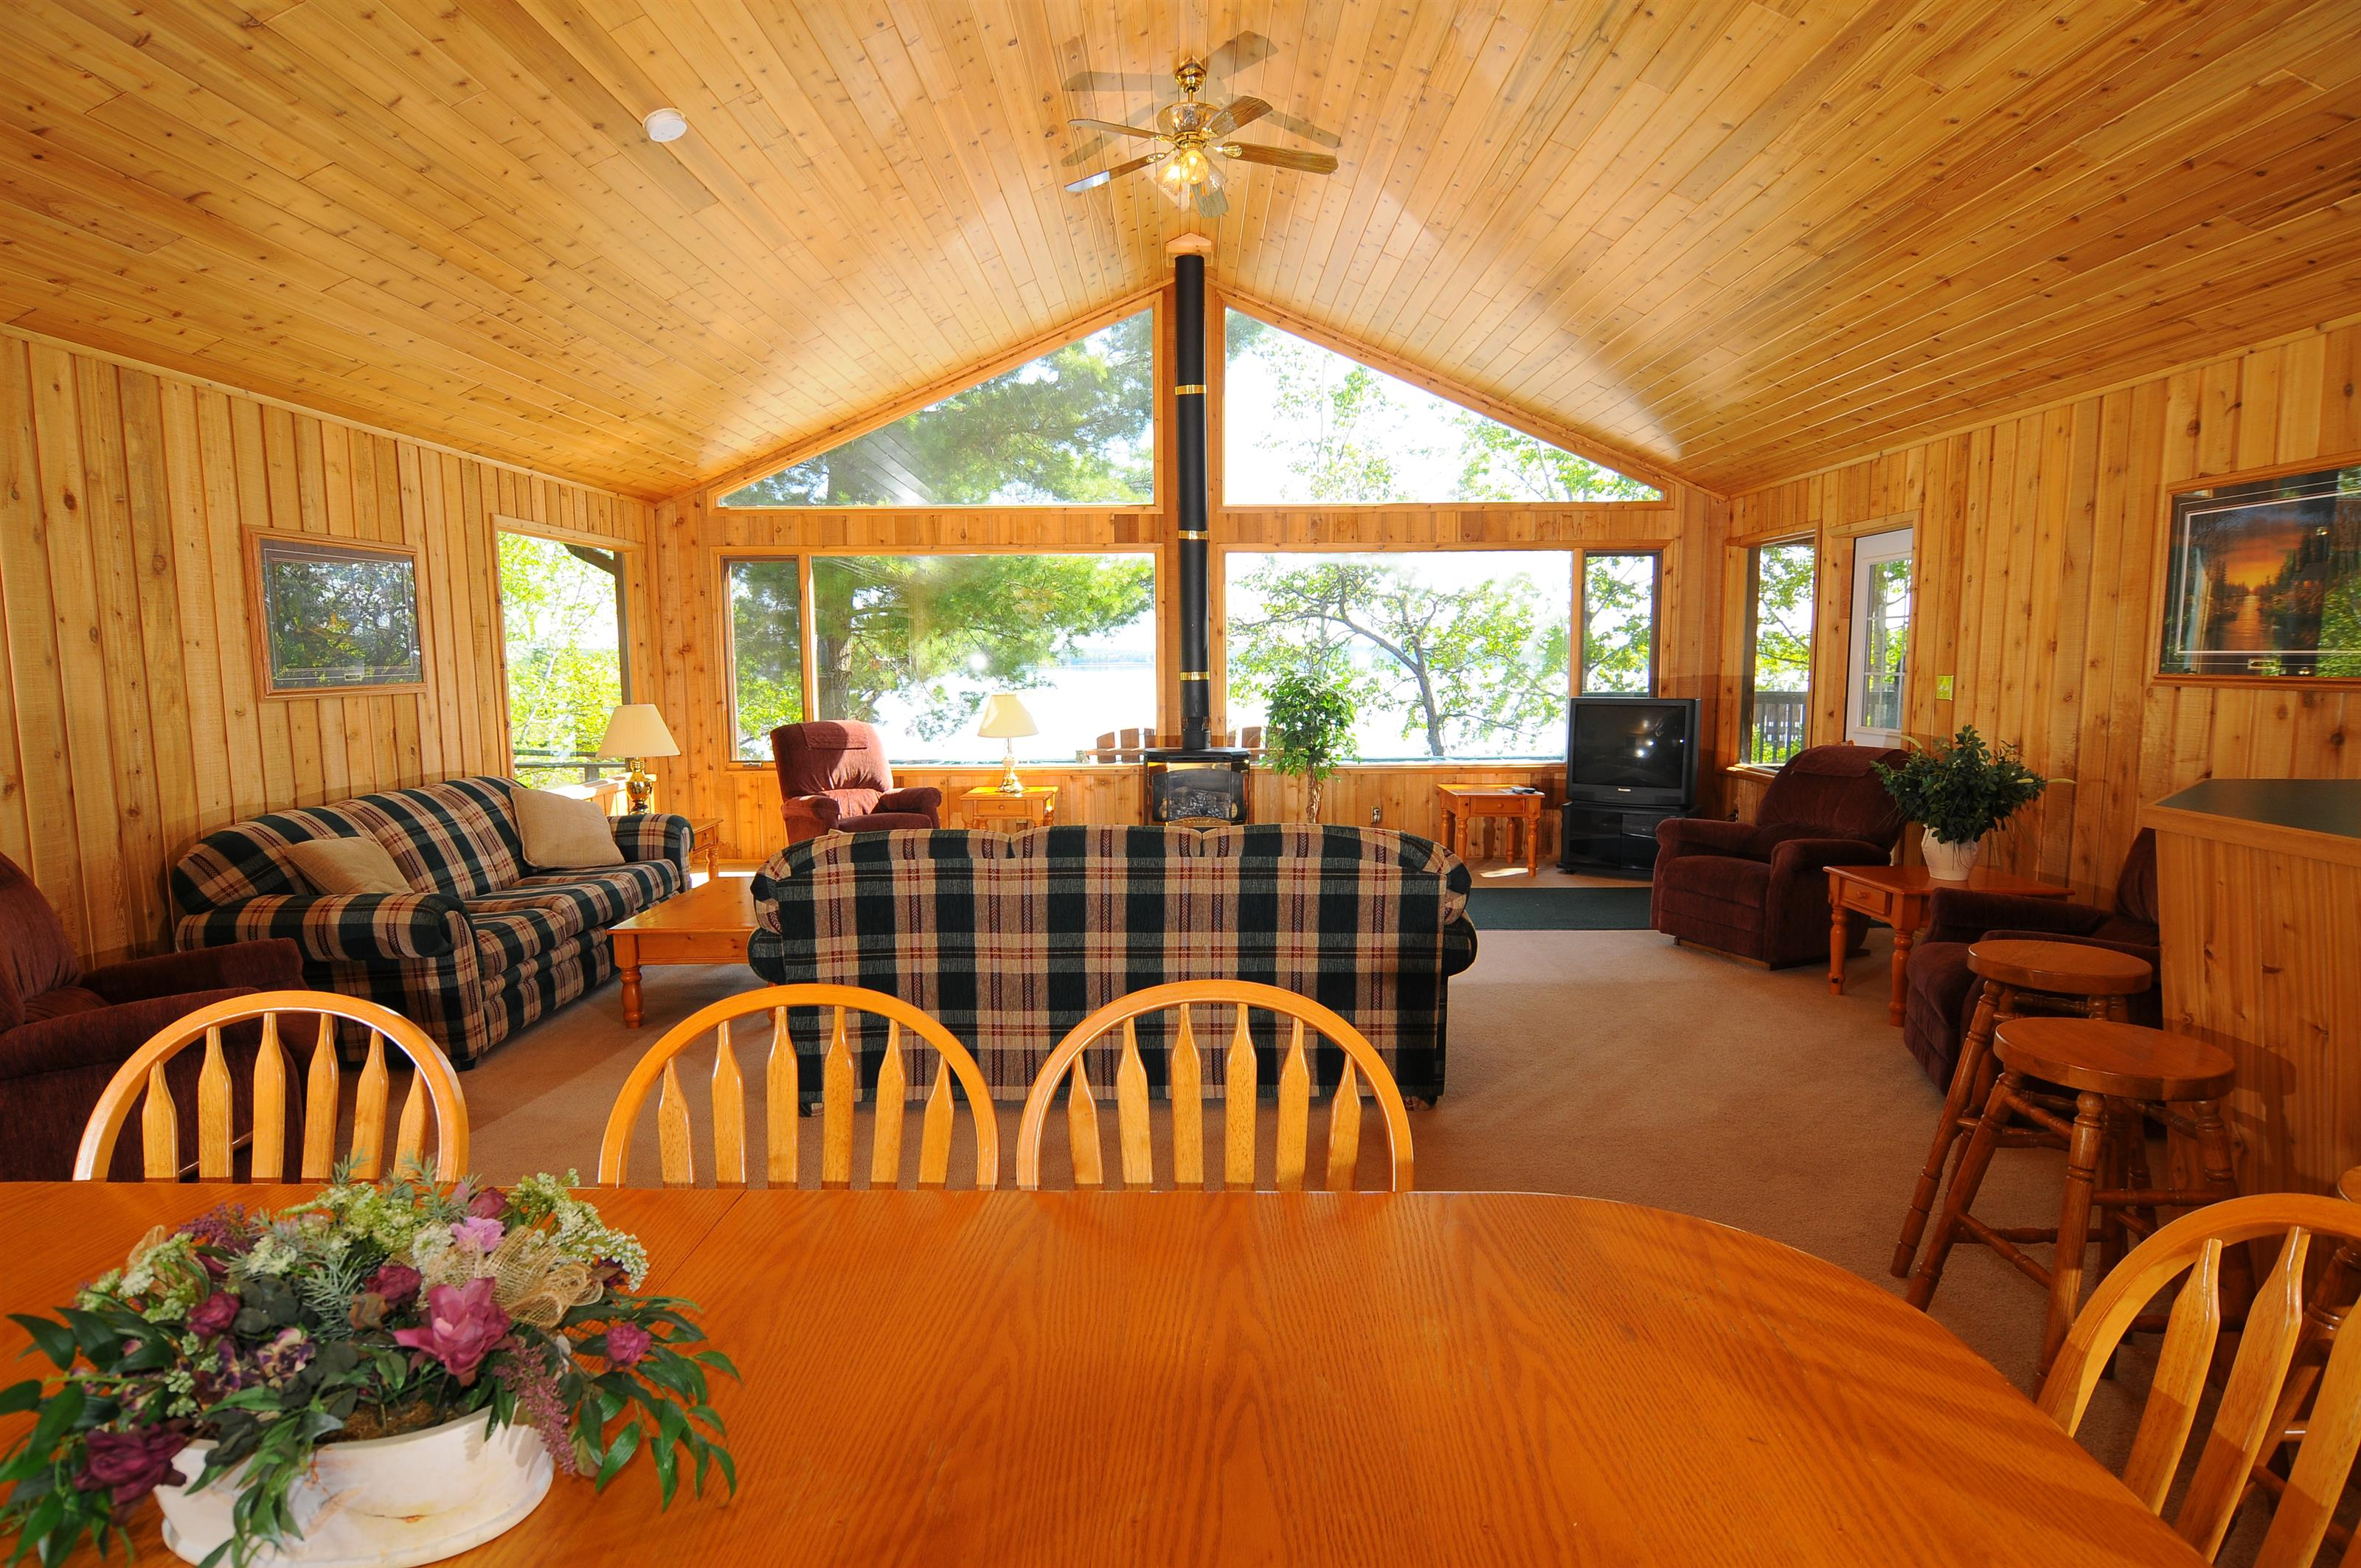 picture of a room in the cabins with a few couches, a table with chairs and a giant window looking out to the lake